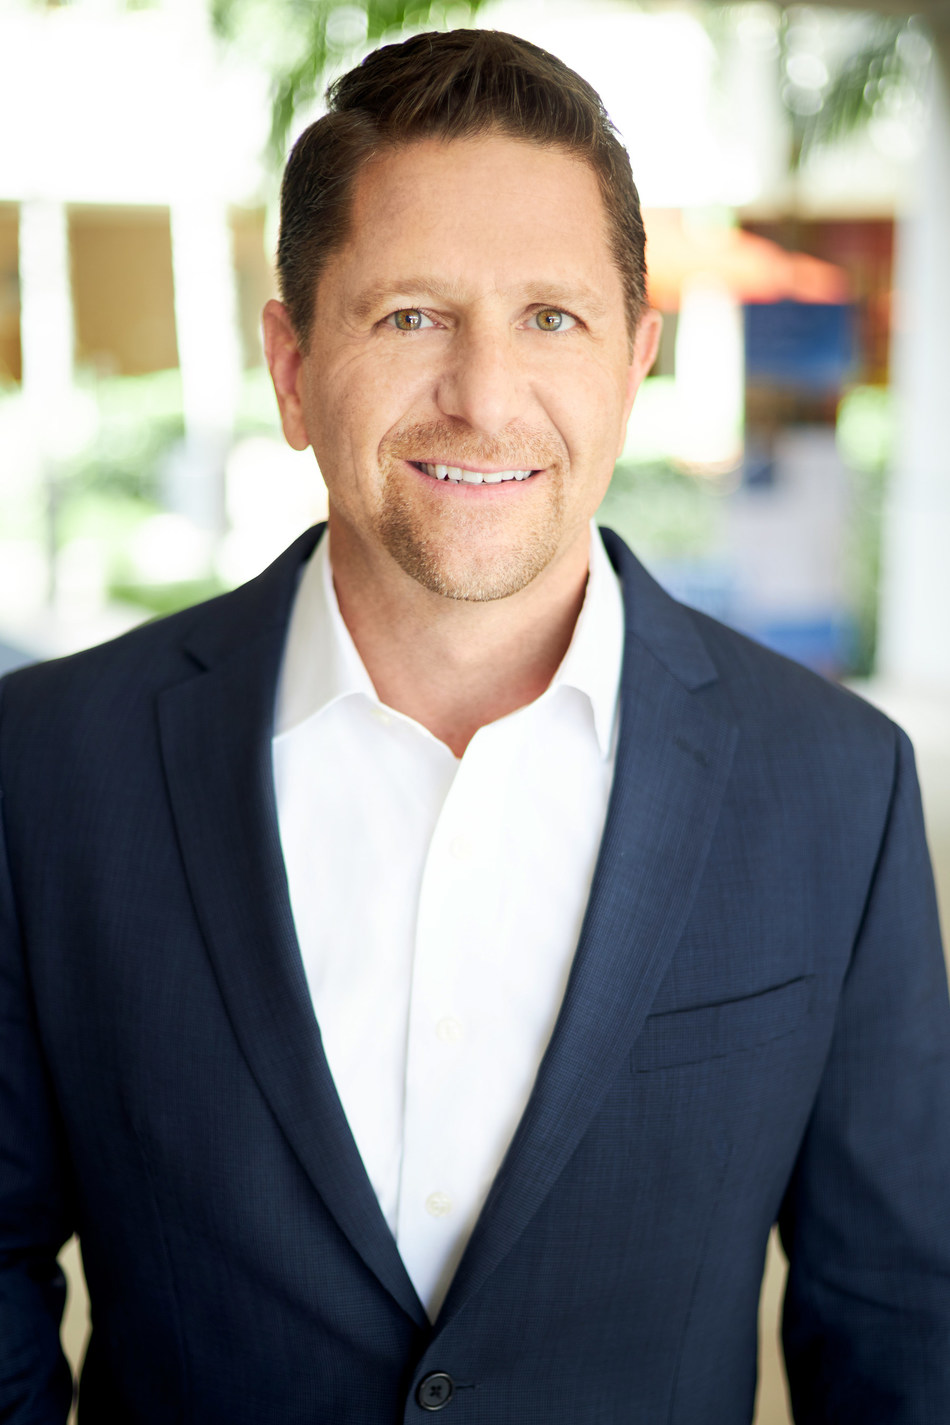 Jeff Clark, New Senior Vice President of Product Management